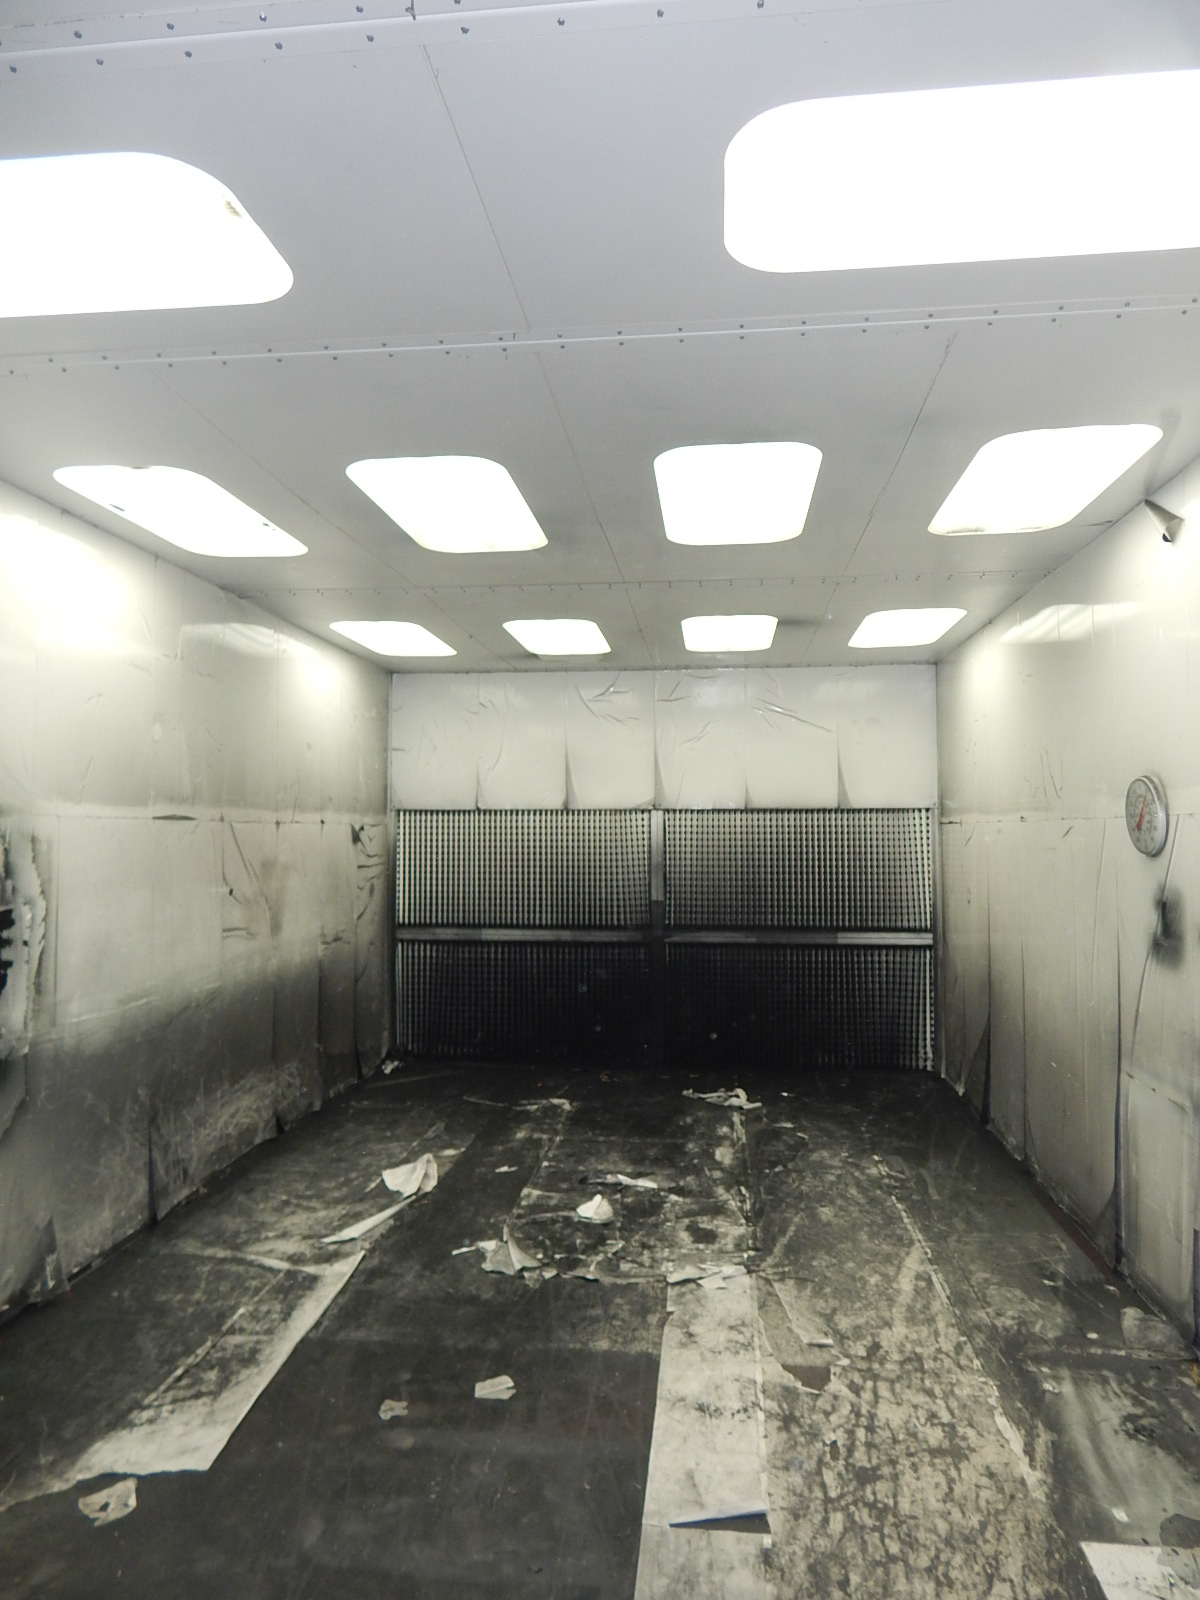 UNITED SB 24.5'L X 10'H X 14'W CROSS DRAFT SPRAY AND FINISHING BOOTH WITH RAYMAR INDUSTRIAL - Image 8 of 9